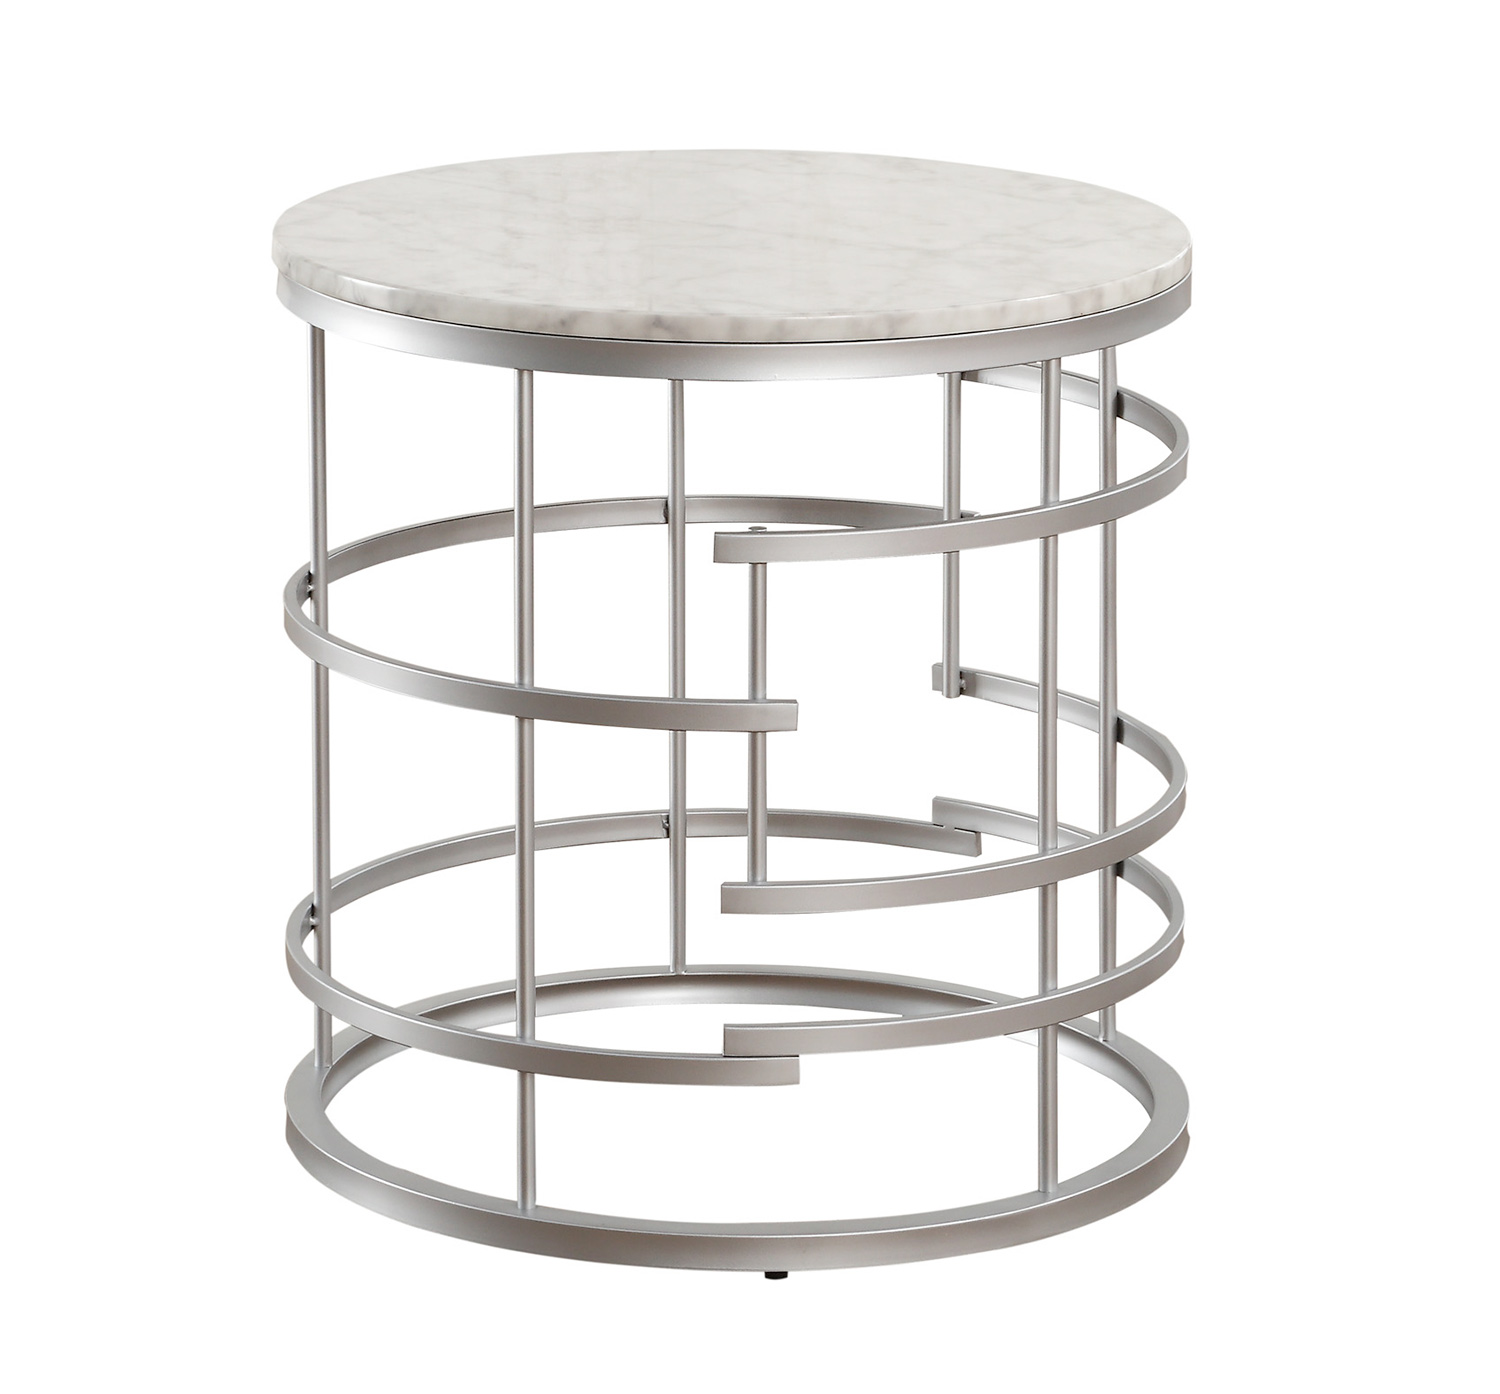 homelegance brassica round end table with faux marble top silver white marble top 3608sv 04. Black Bedroom Furniture Sets. Home Design Ideas